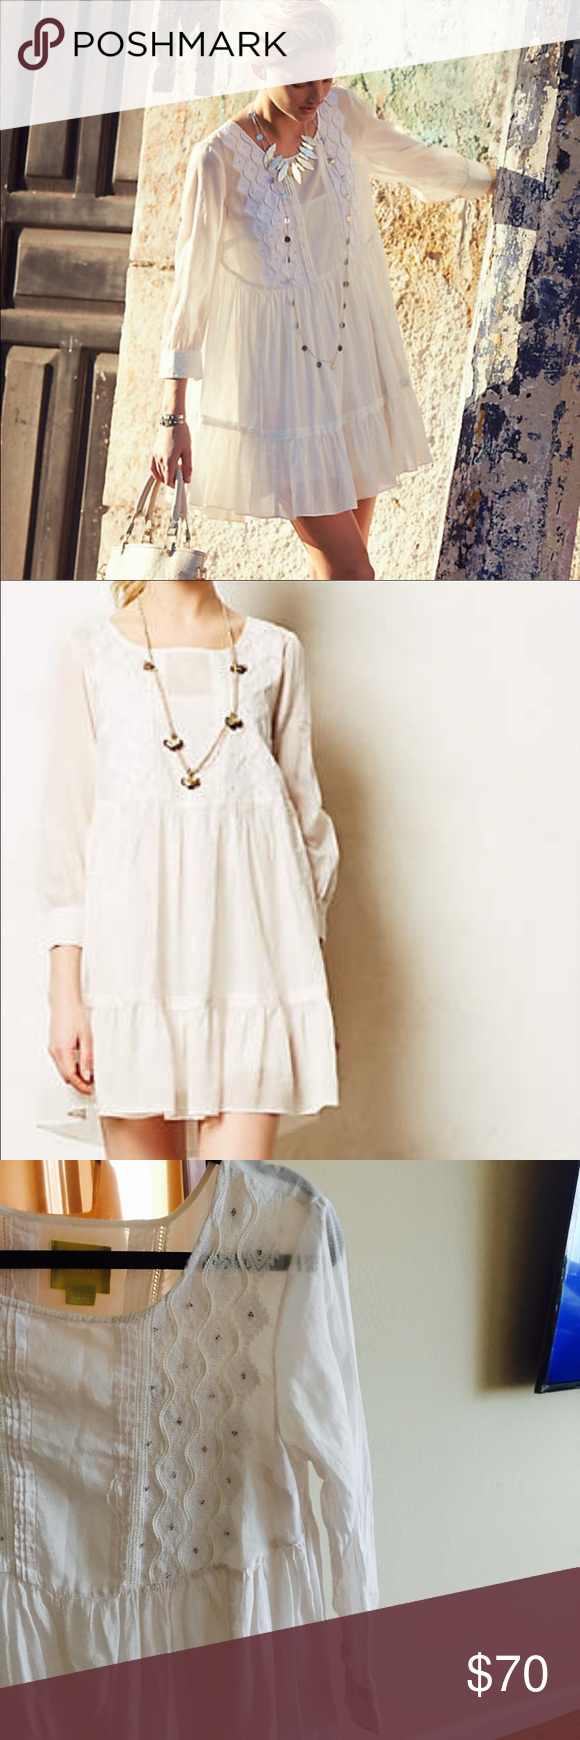 fa307f4f9cde0 Anthropologie Bermeja Tunic Dress Spring's free spirit calls for pieces  that are equally inspiring - a